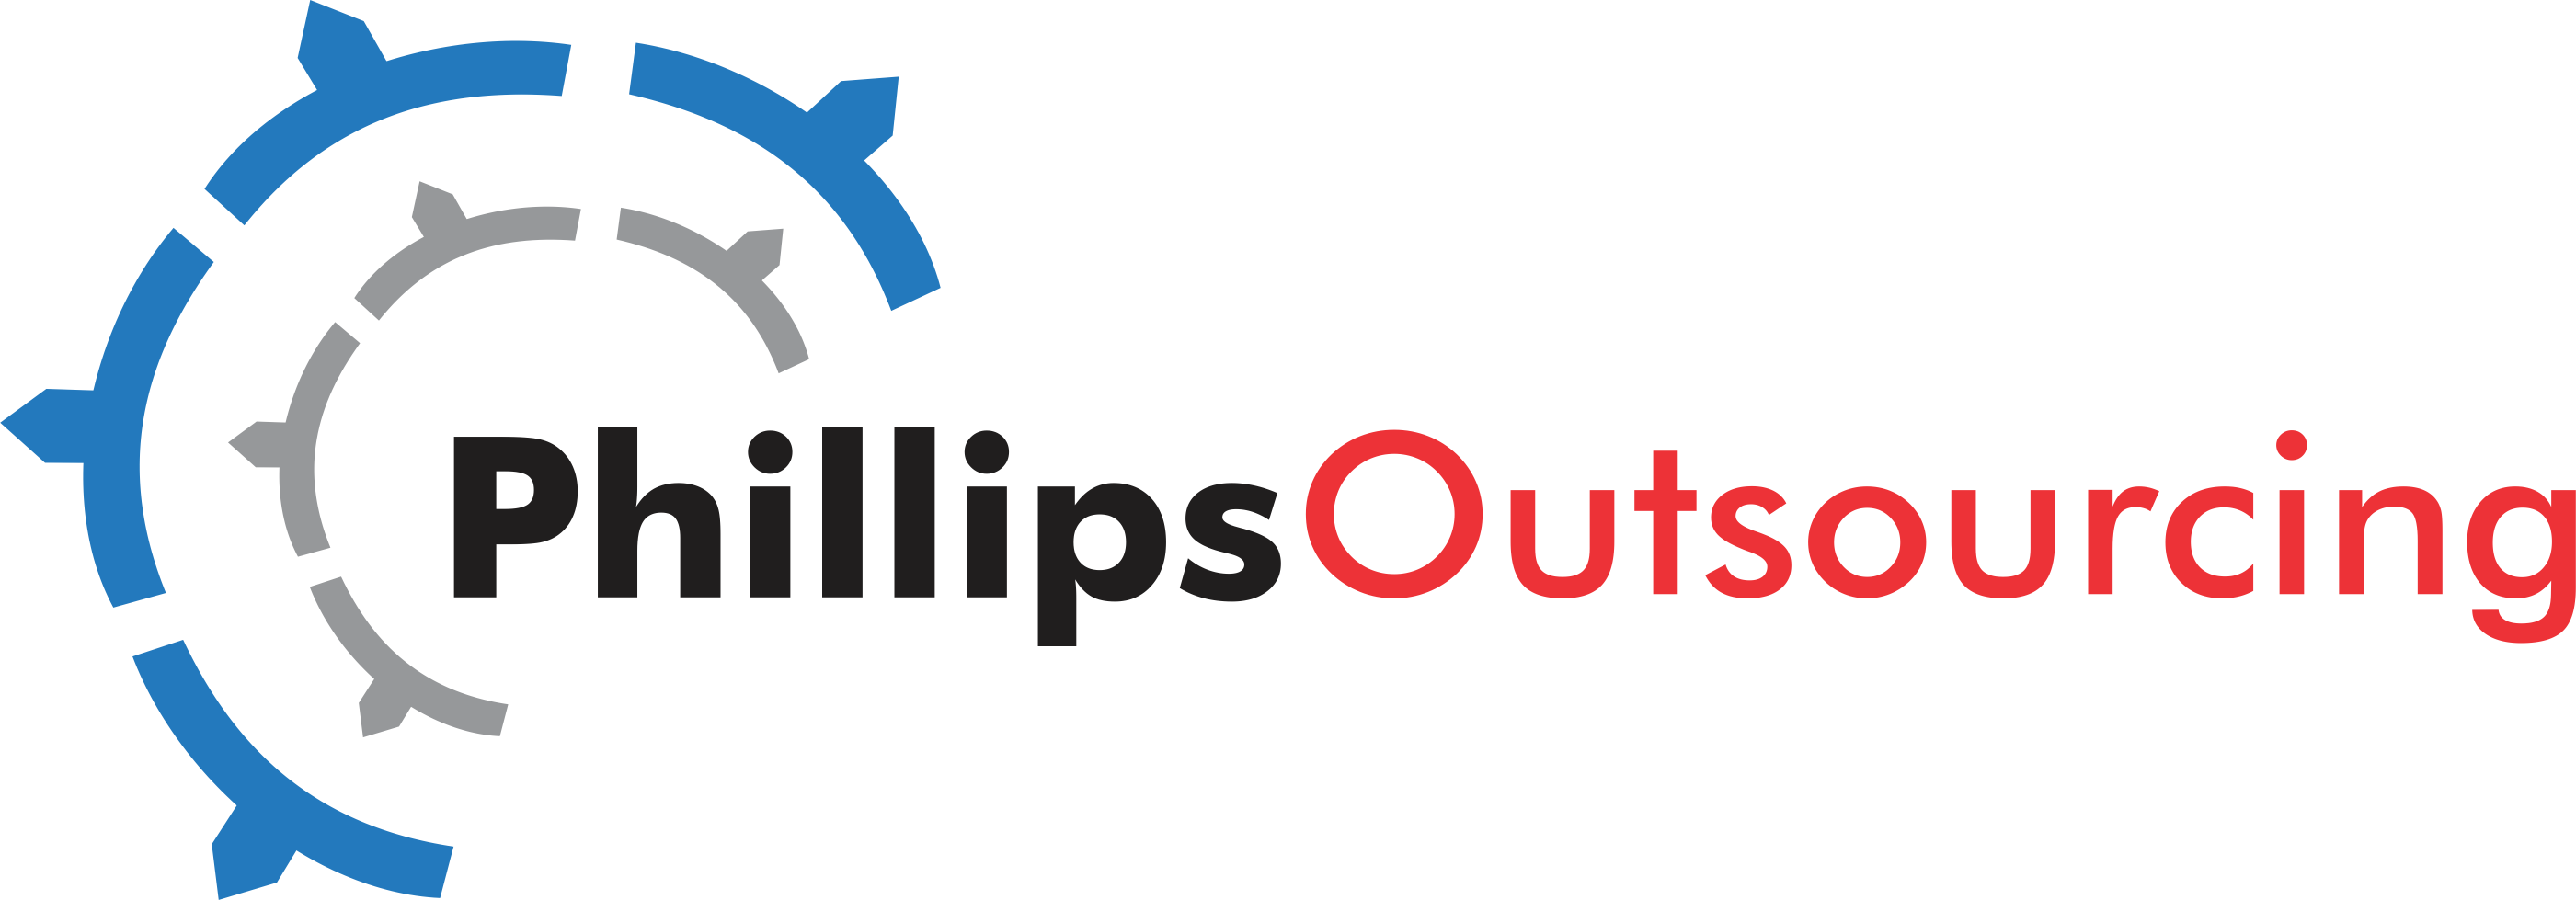 Phillips Outsourcing Nigeria Limited